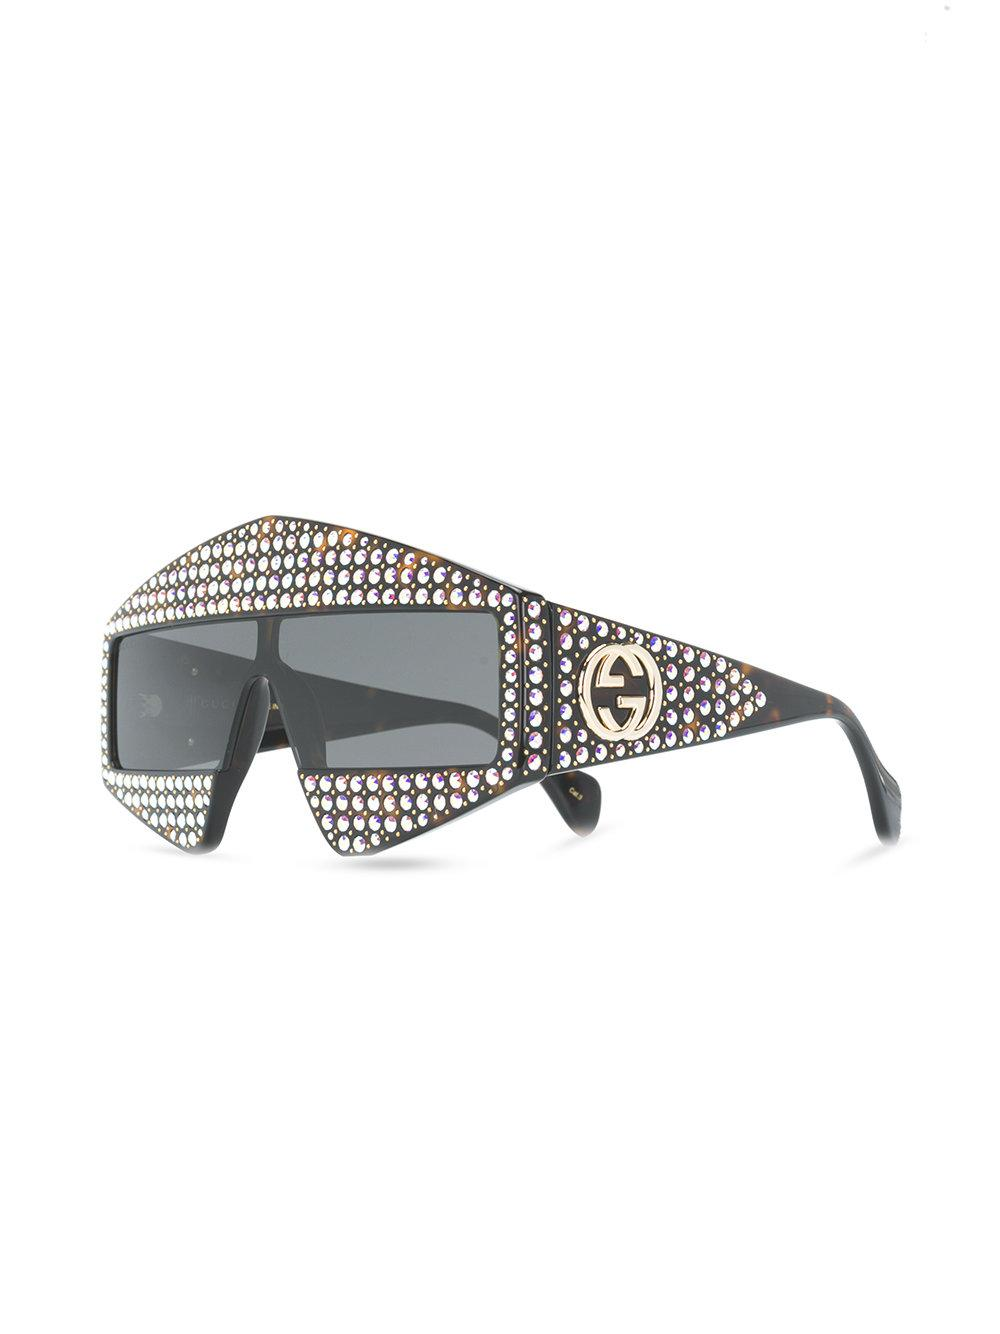 c9a3c6c4444 Gucci Crystal Visor Sunglasses in Brown - Lyst